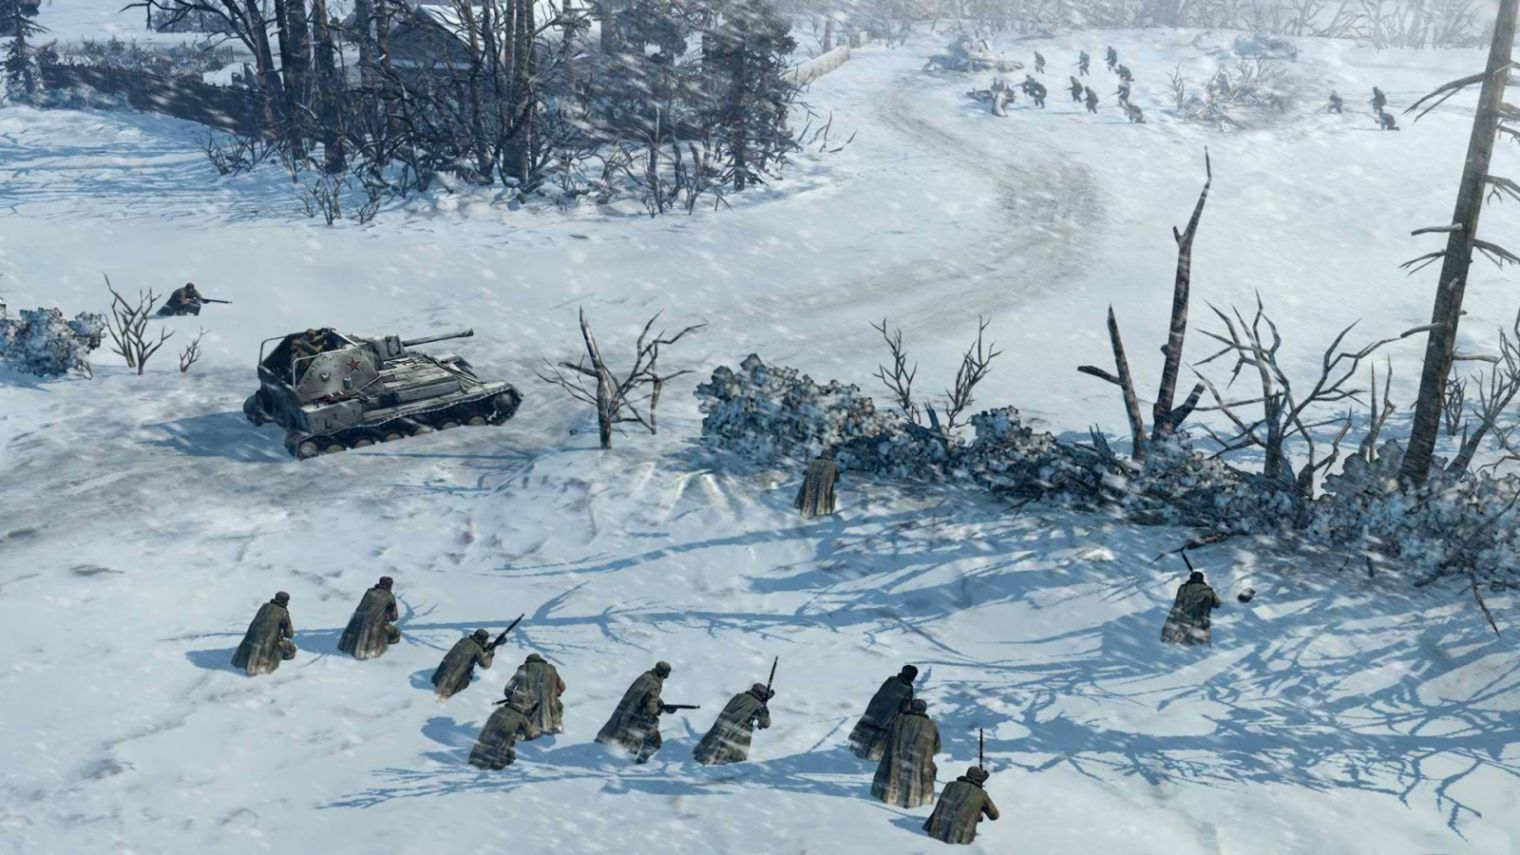 Company Of Heroes 2 Snow Landscape Wallpaper All Hd Wallpapers